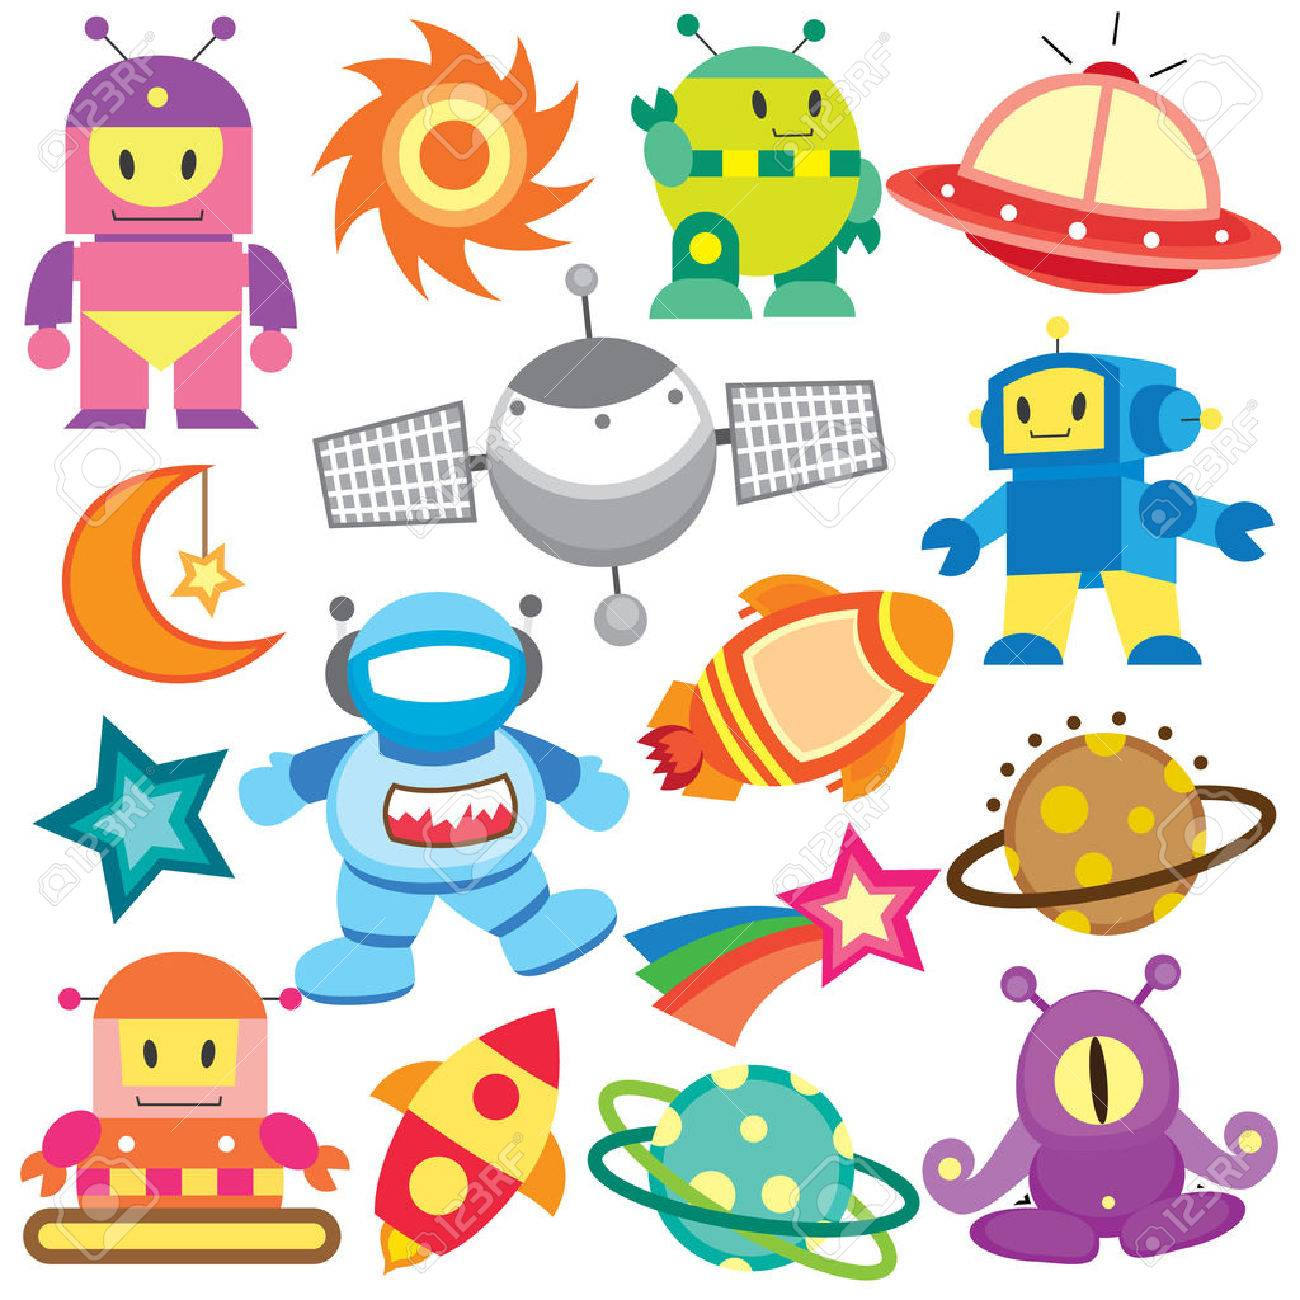 outer space and robot clip art set.